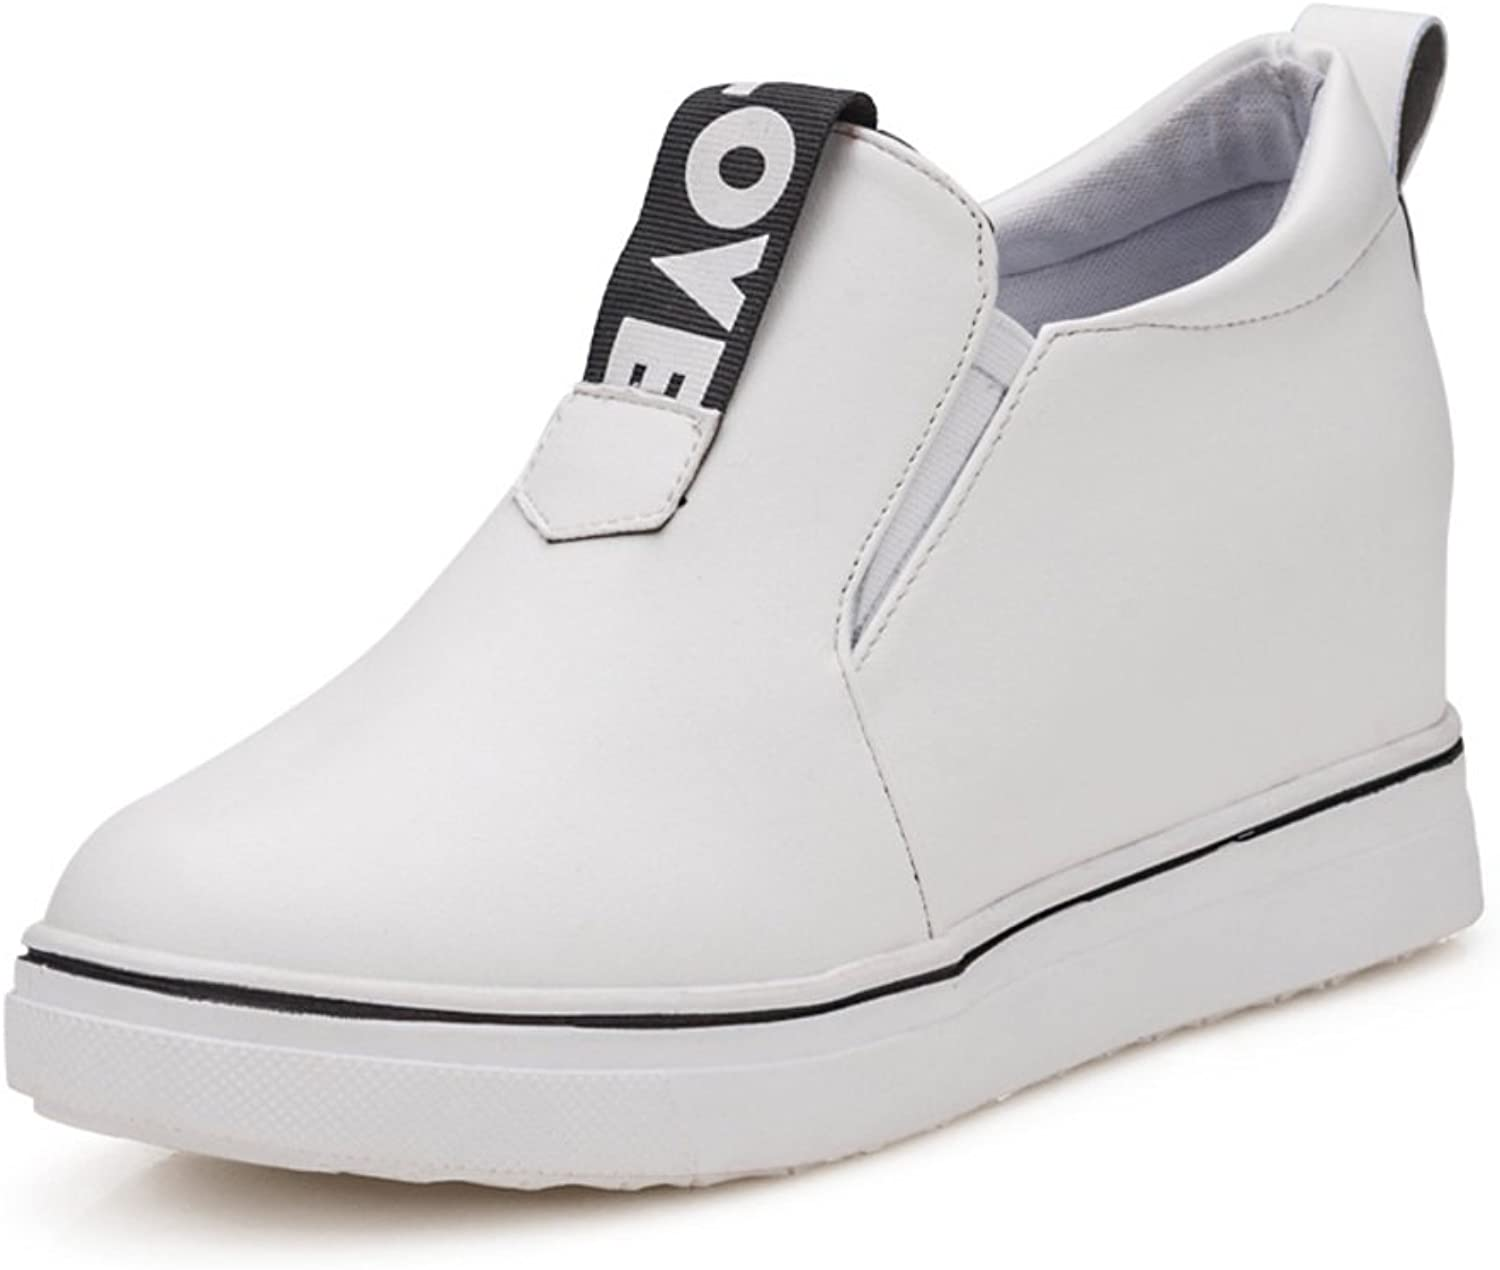 Thick-soled casual shoes in spring shoes with invisible high-heel